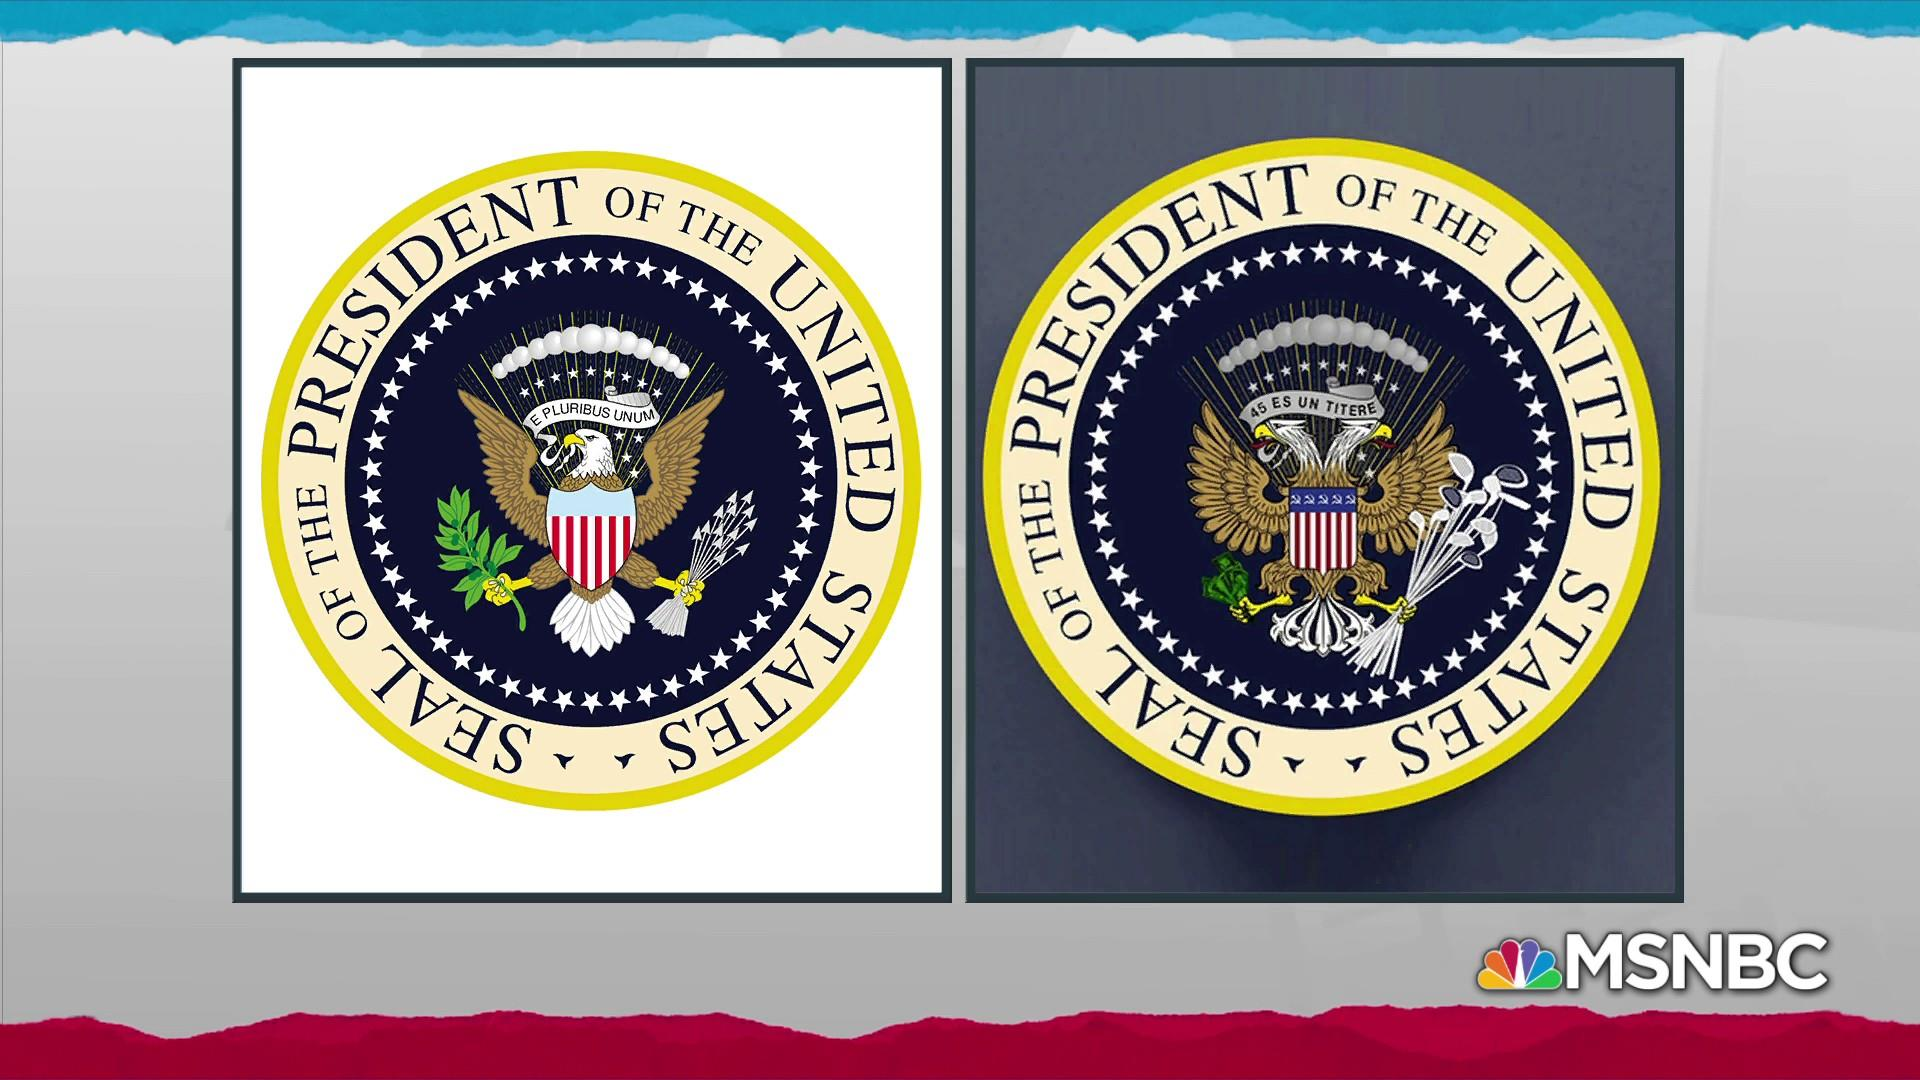 Trump mocked on stage by errant satire presidential seal